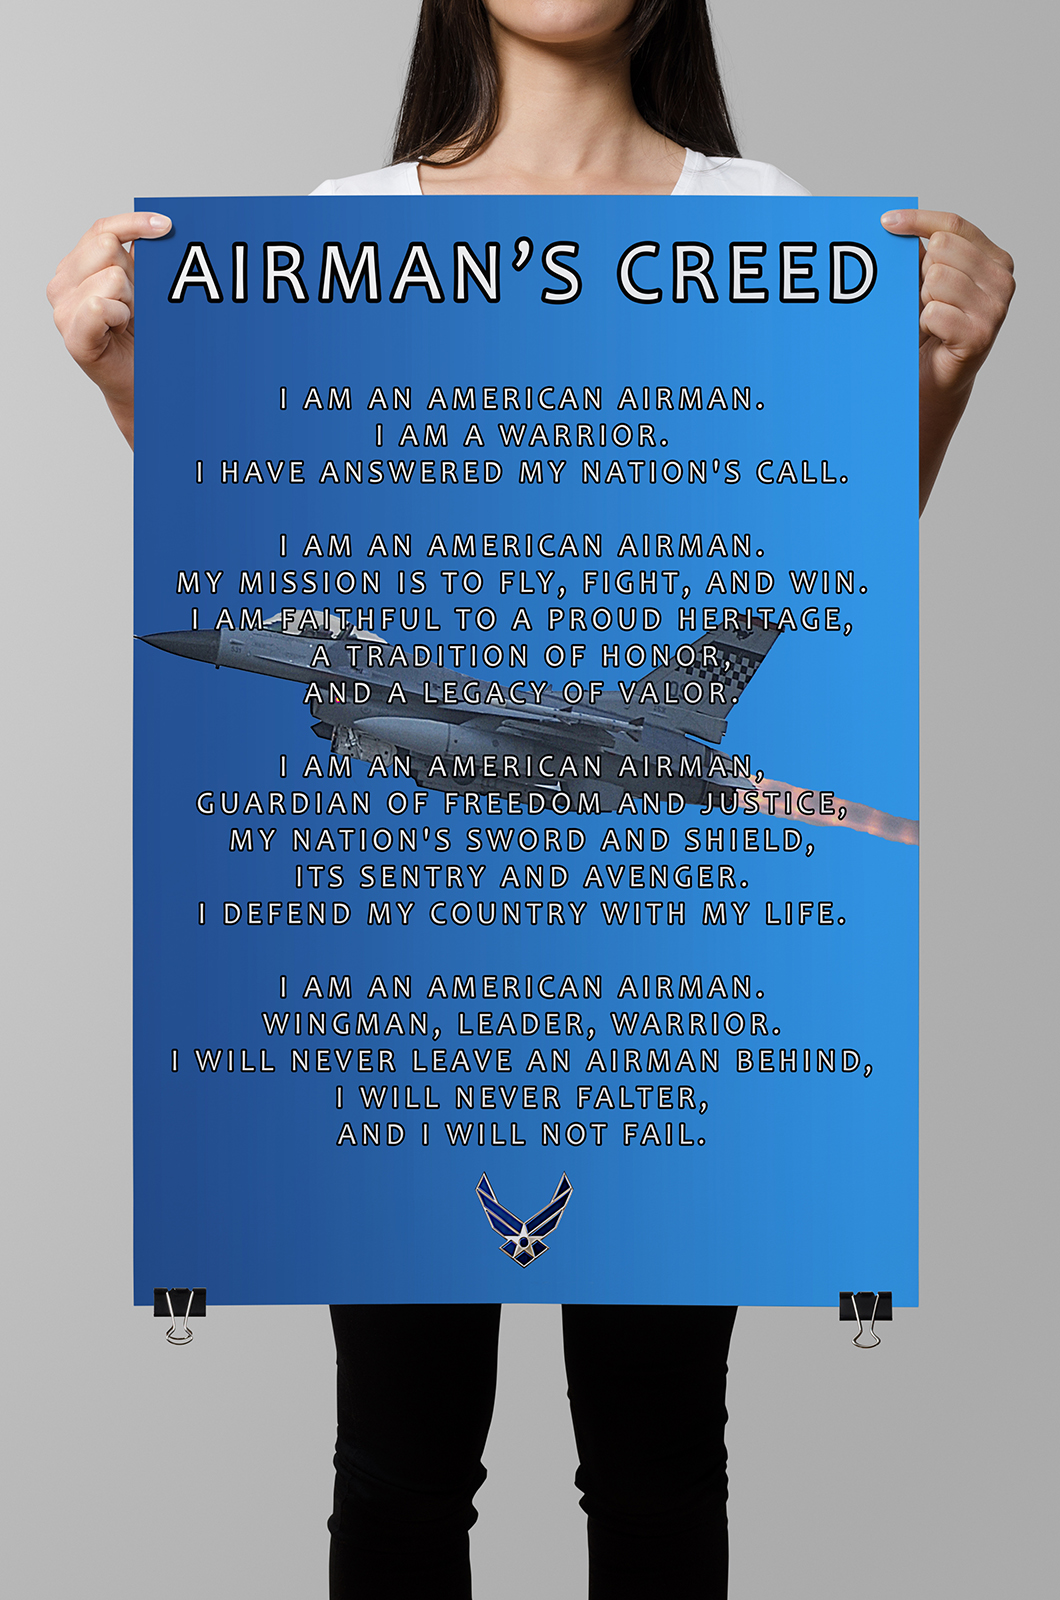 Airmans creed poster honor duty valor airmans creed poster altavistaventures Choice Image